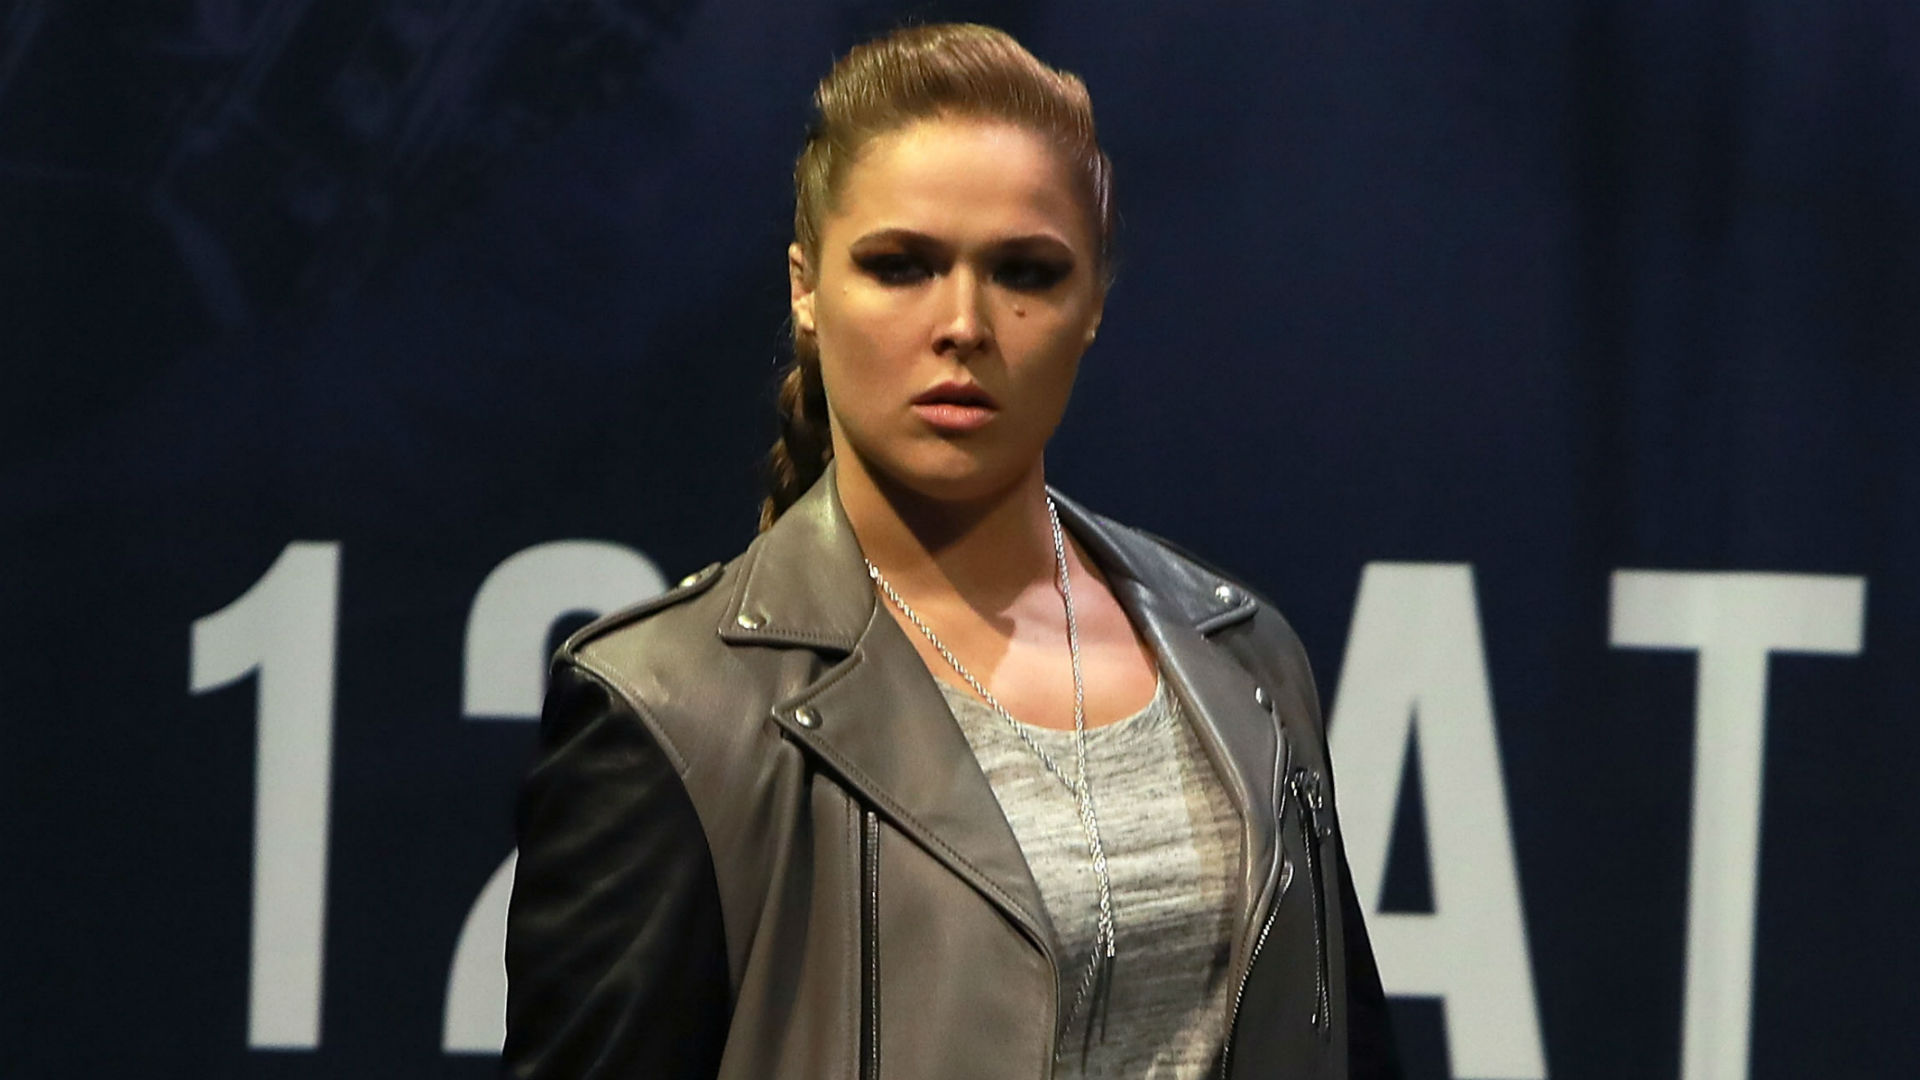 UFC 207: Ronda Rousey and the Quest for Answers